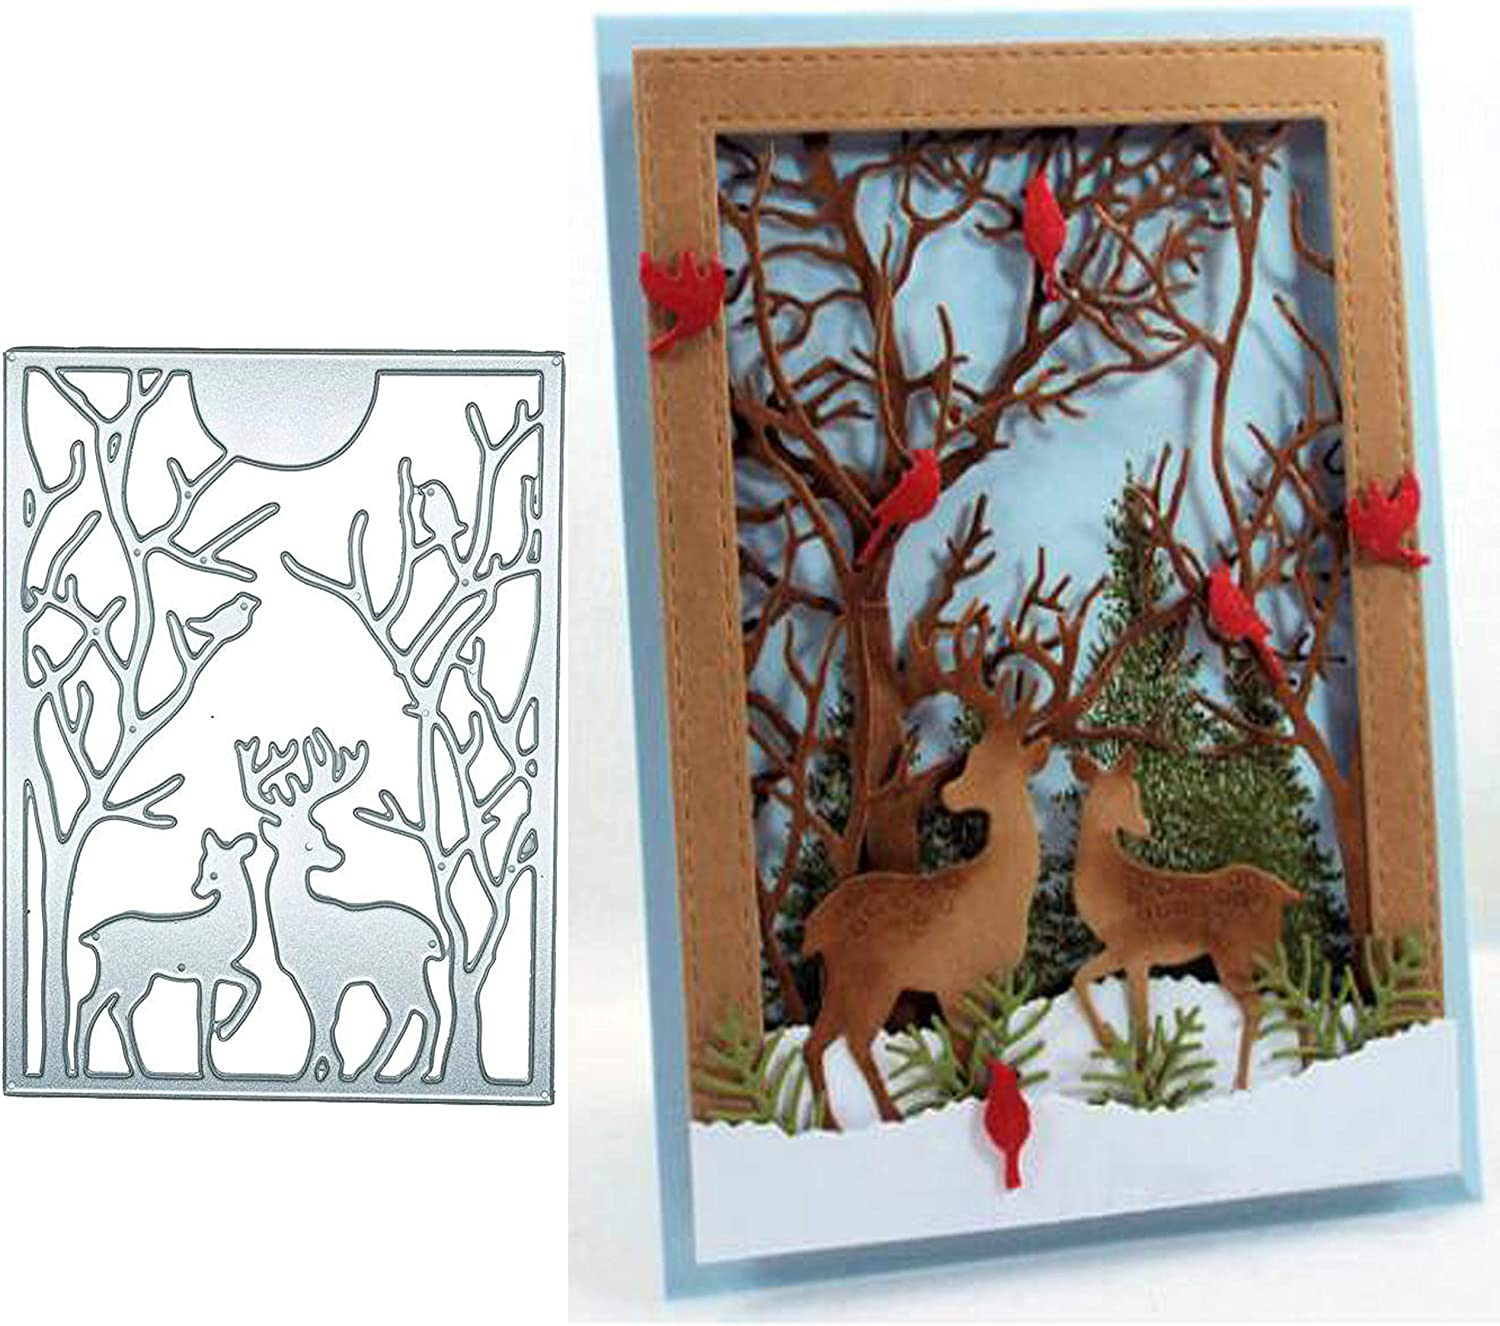 5.9 by 7.1 Inches Christmas Deer Metal Cutting Dies Craft Die Cuts for Card Making and Scrapbooking